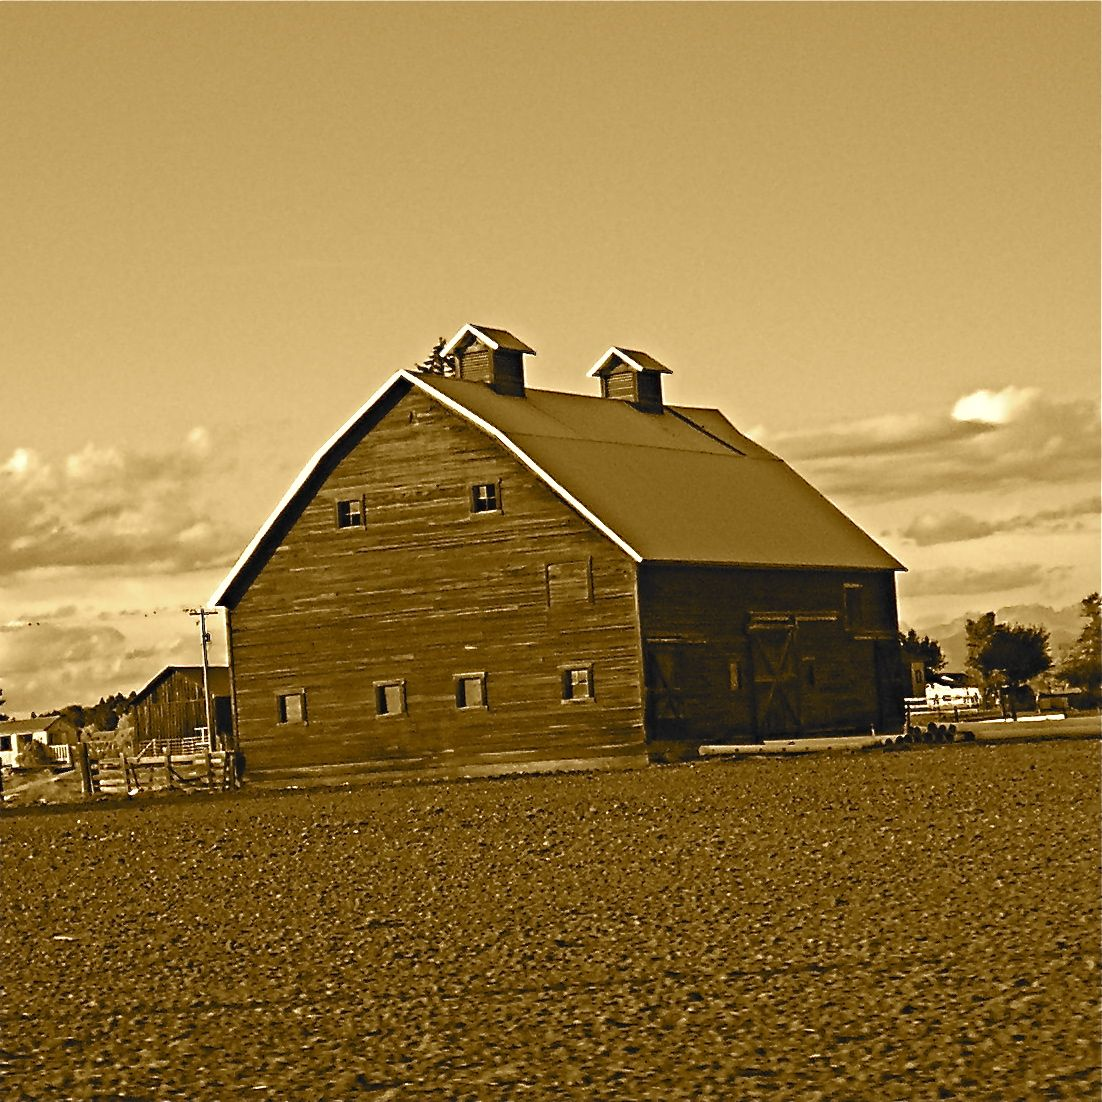 Ellensburg is surrounded by Barns.